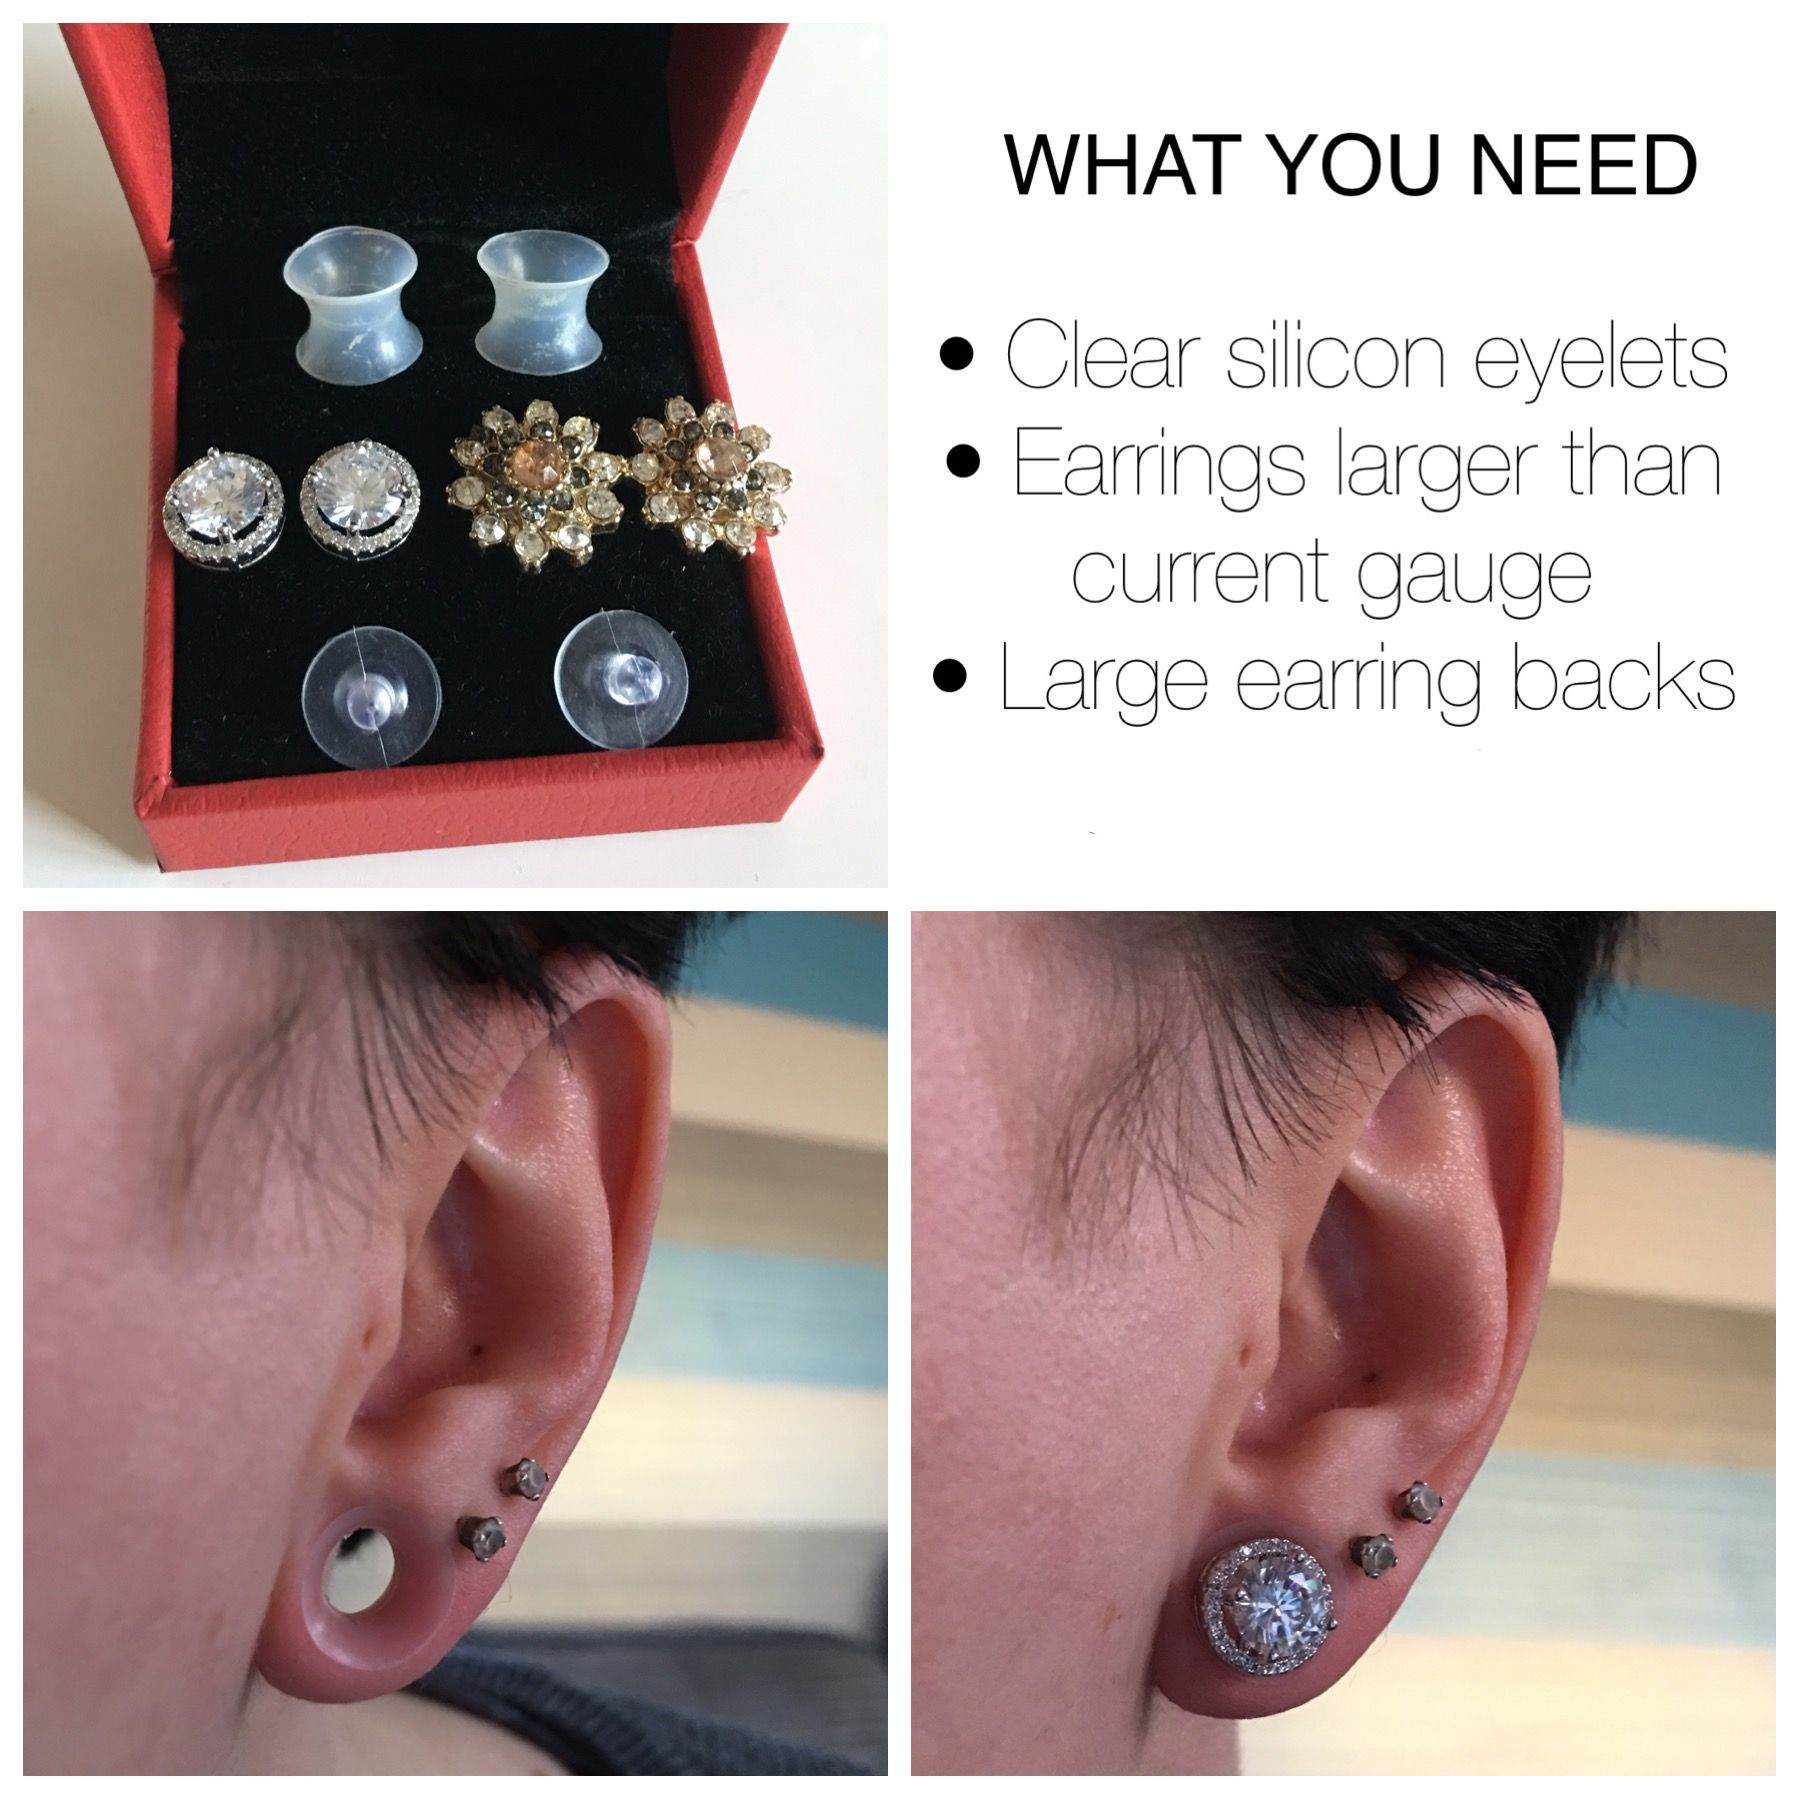 c8a4ec182 How to hide stretched ears using clear silicone eyelets, earrings larger  than current gauge and large earring backs. All easily bought from amazon